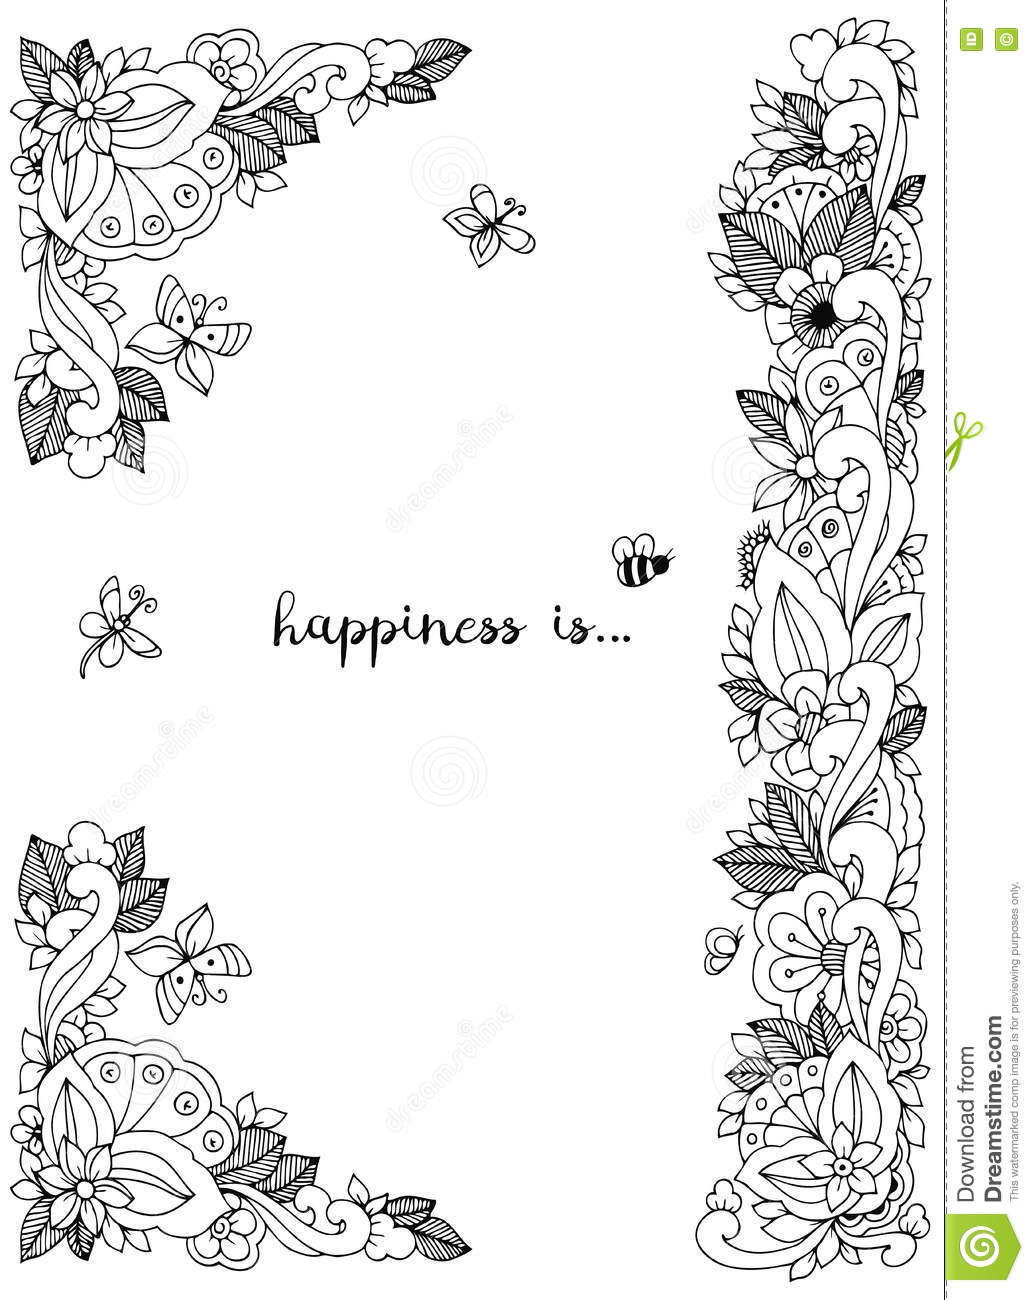 Malvorlagen Bl C3 A4tter Und Fr C3 BCchte likewise Vector Illustration Floral Frame Zen Tangle Dudlart Coloring Book Anti Stress Adults Black White furthermore Disney Donald Duck Dog Autumn Coloring Page moreover 27 Images Of Dogwood Flower Template Free Printable Download 947 in addition Pumpkin Counting Coloring Page. on leaf coloring pages